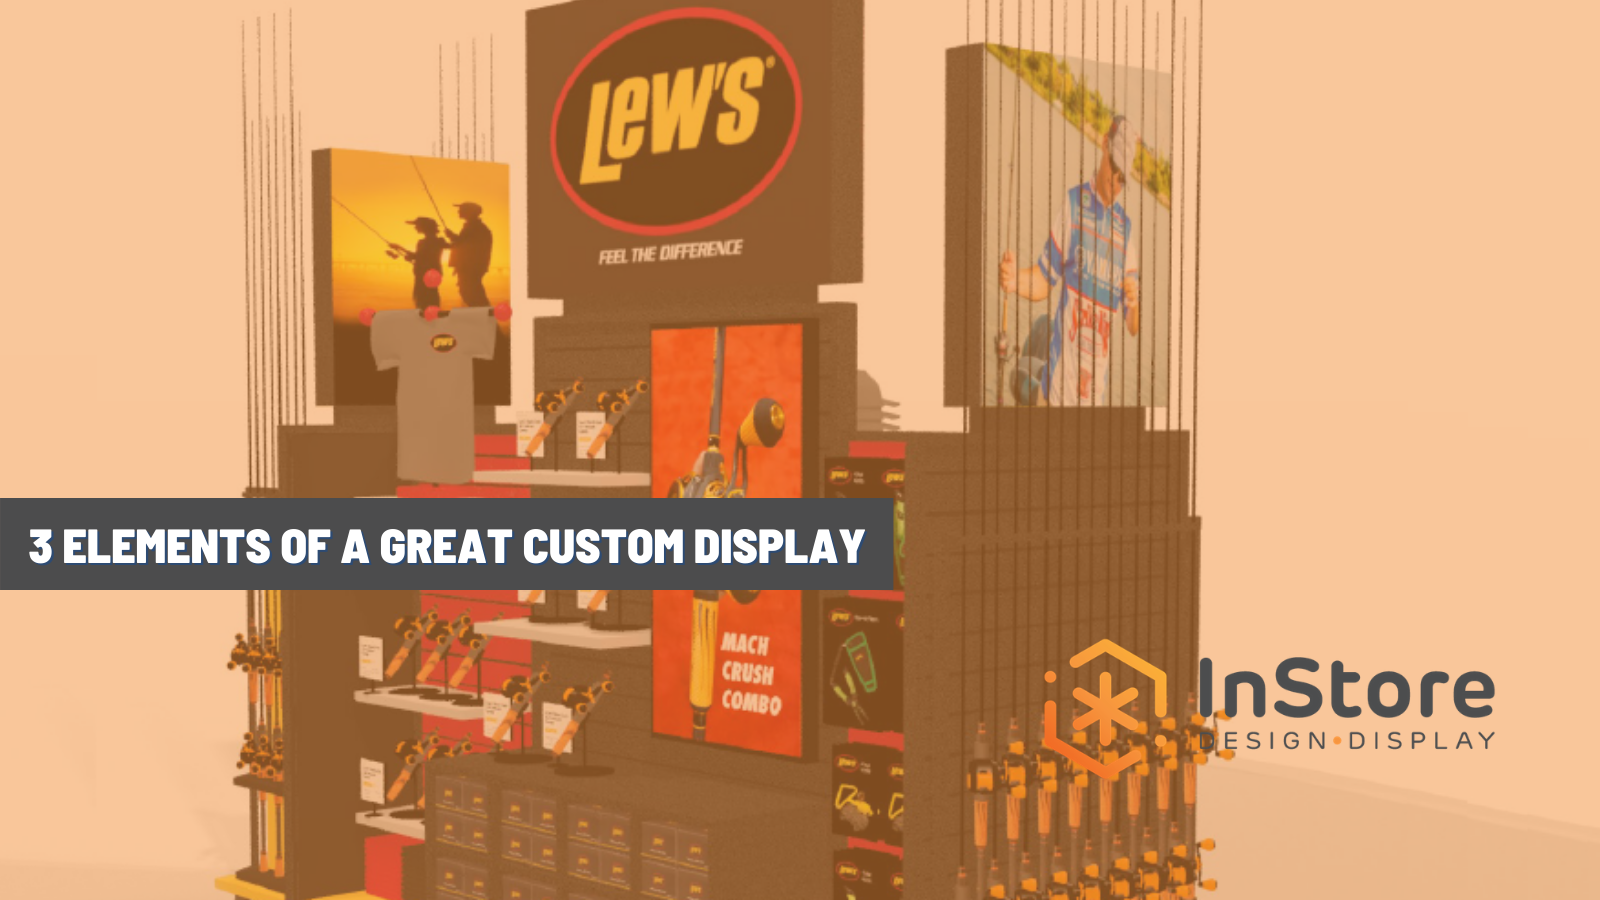 3 Elements of a Great Custom Display